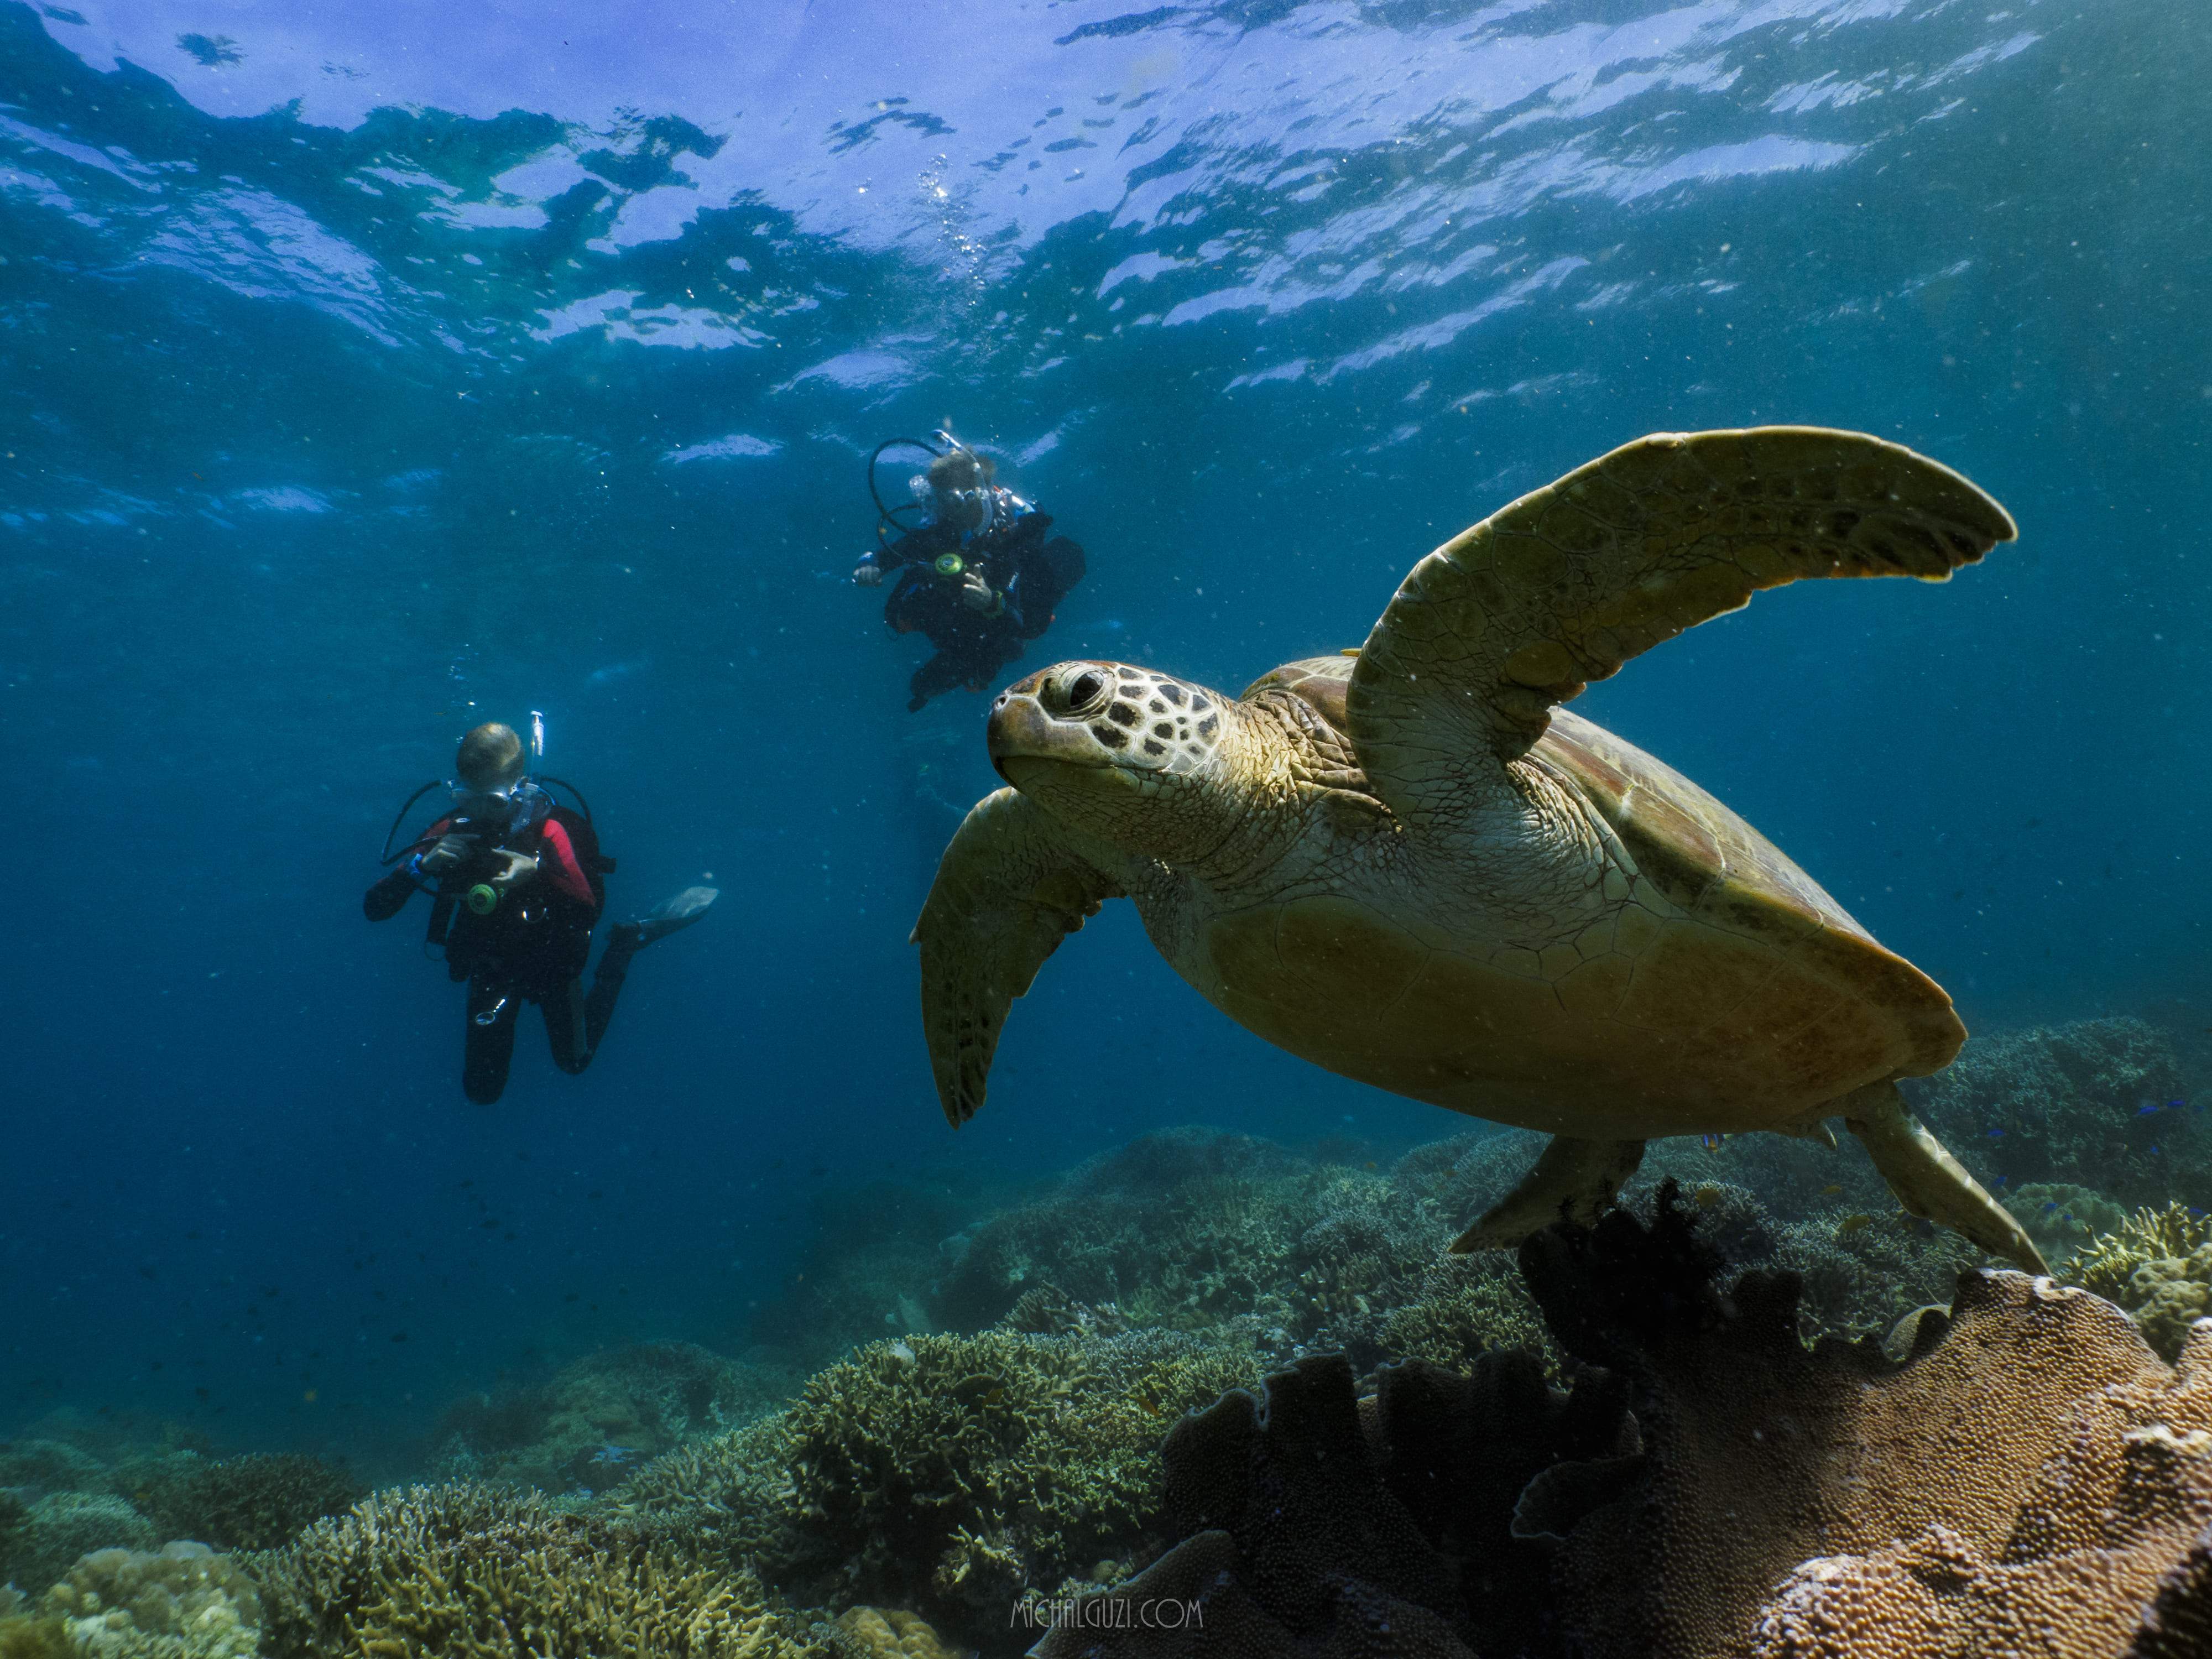 A sea turtle as seen during a diving session in Cebu